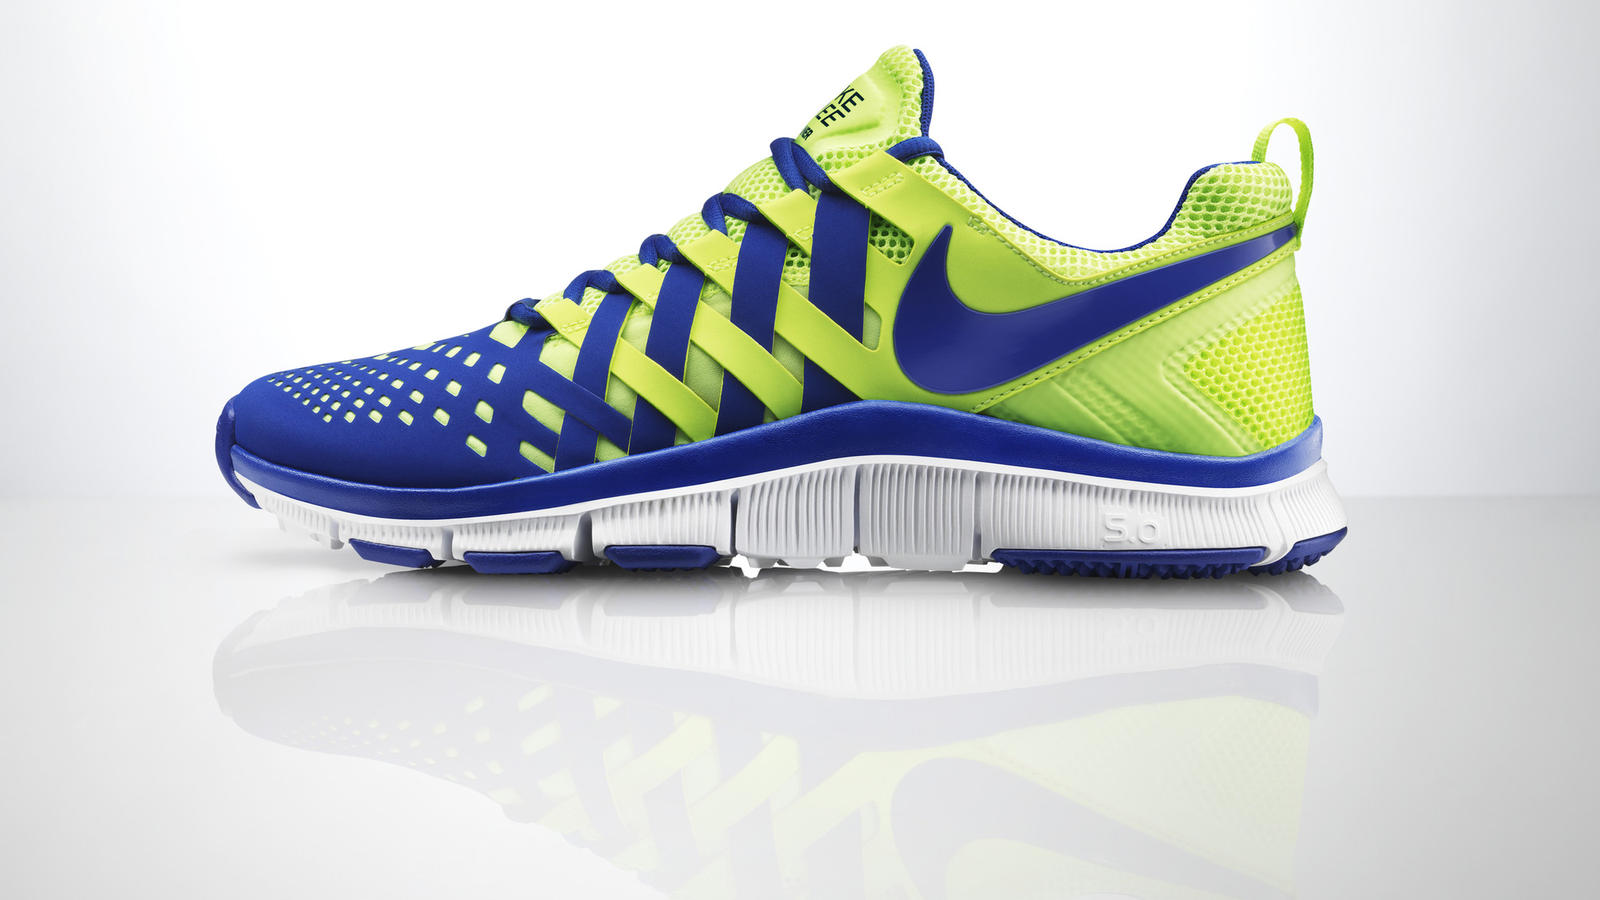 nike free finger trap trainer 5.0 sneakers with wheels